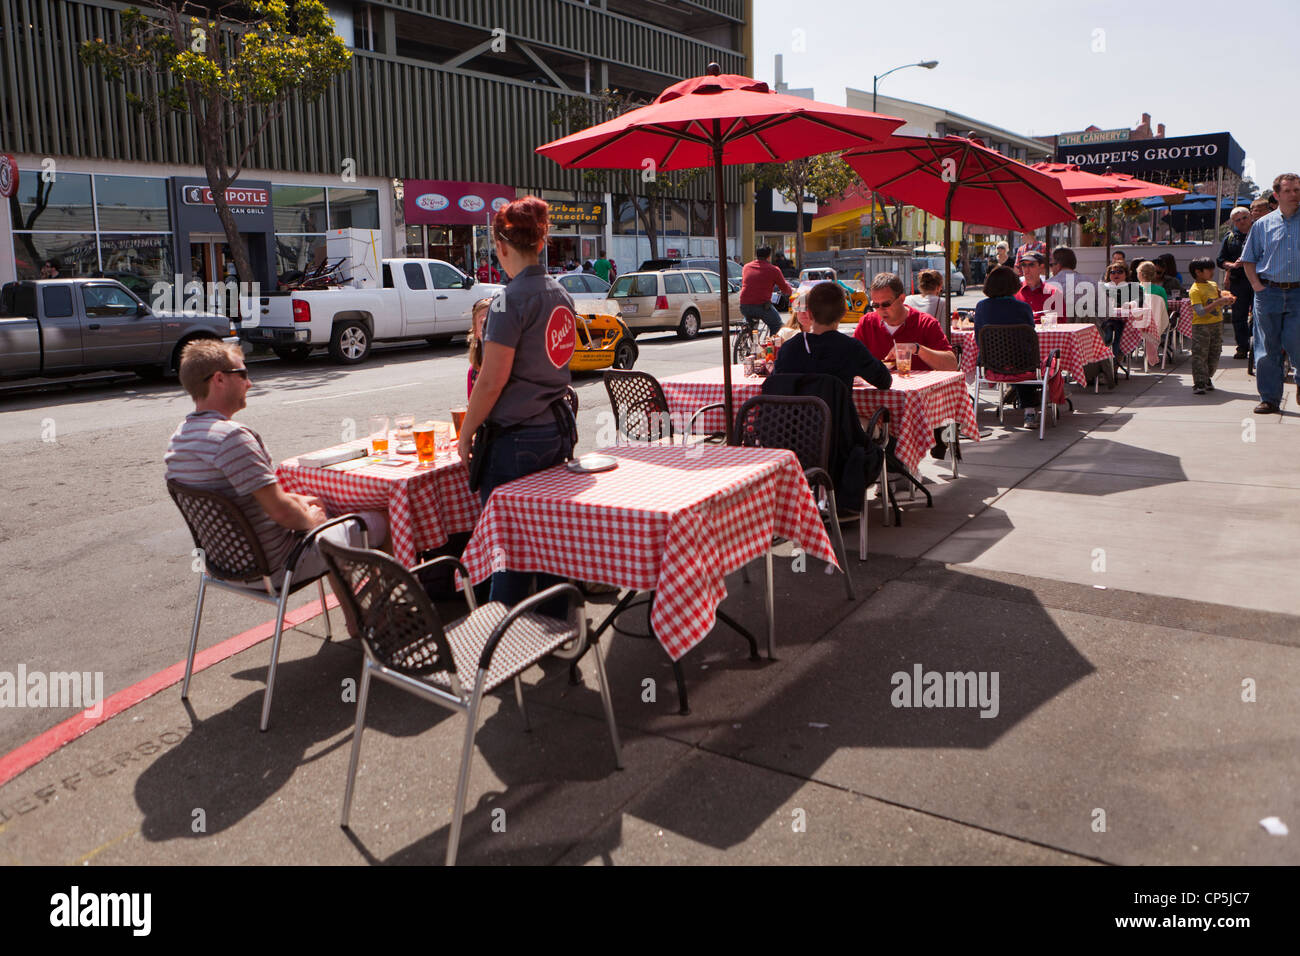 Restaurant tables on the sidewalk - Stock Image